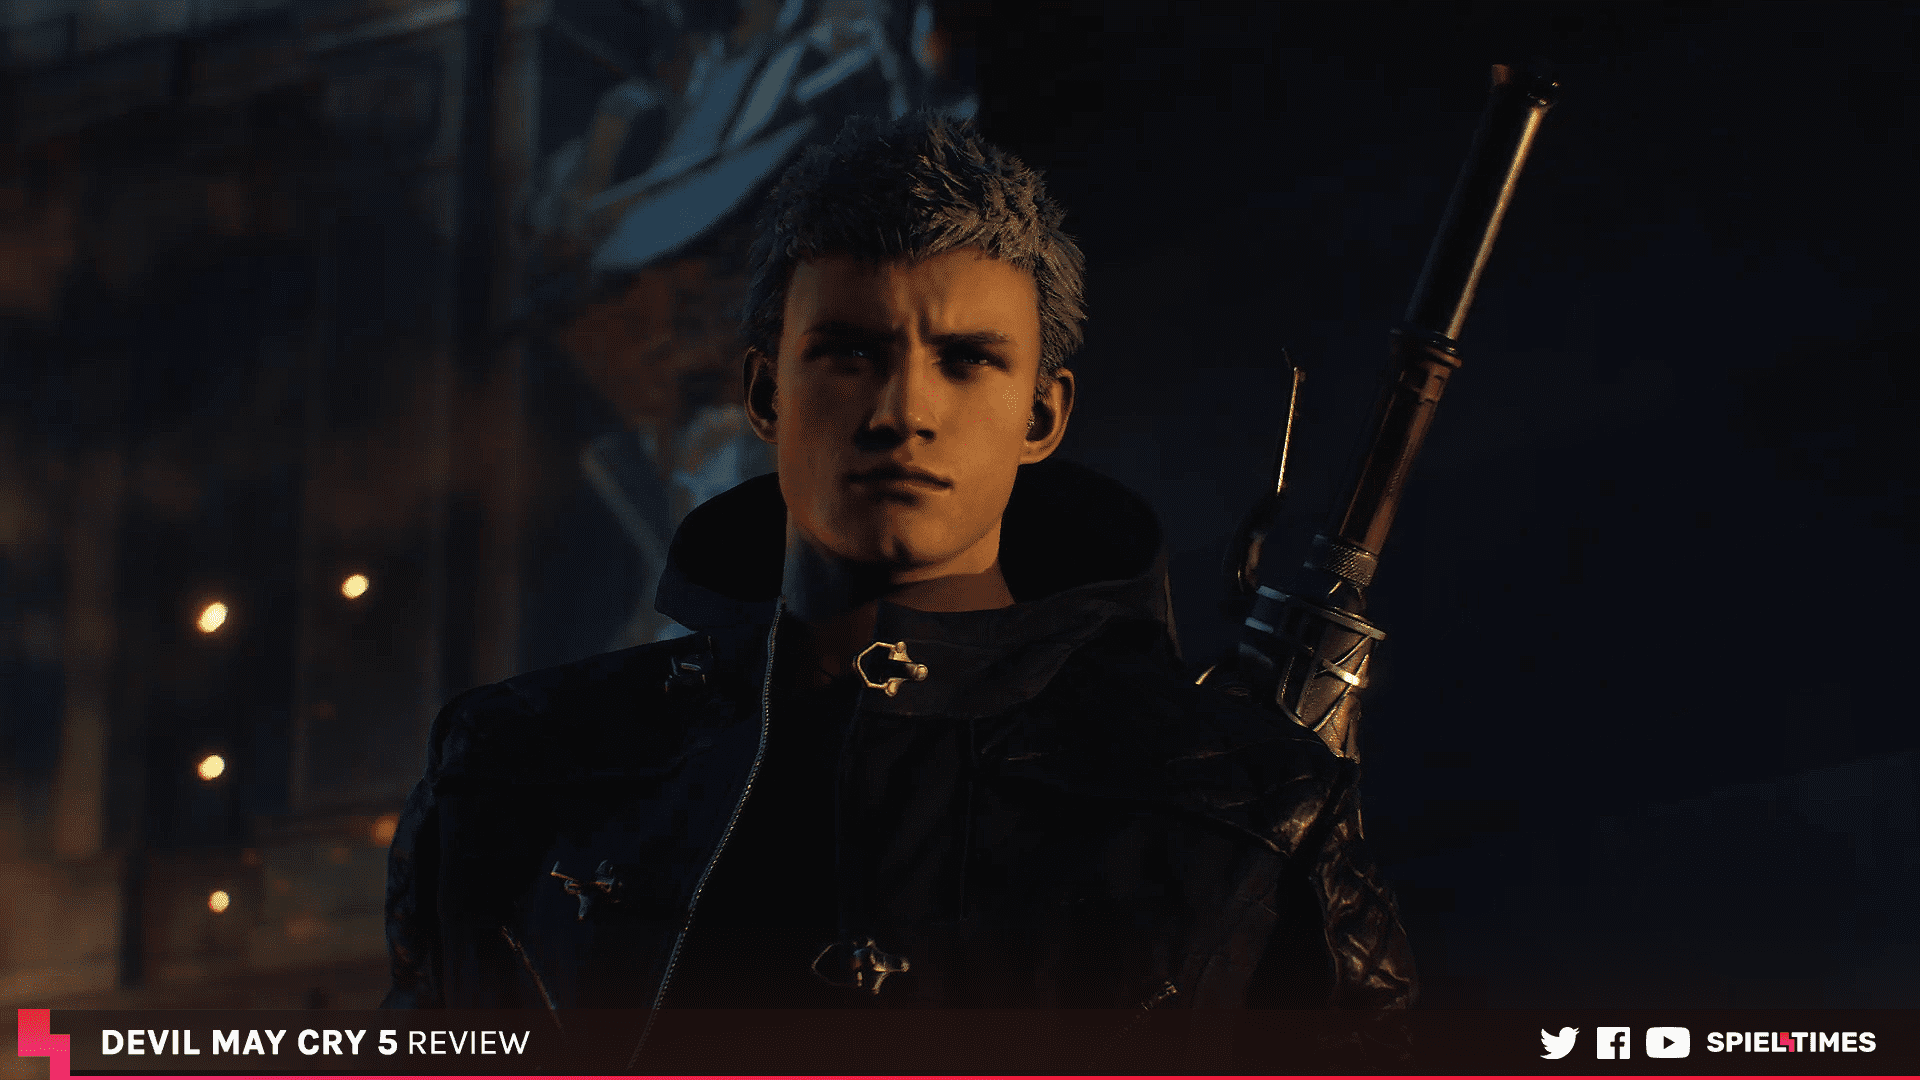 Devil May Cry 5 - The Spiel Times Review